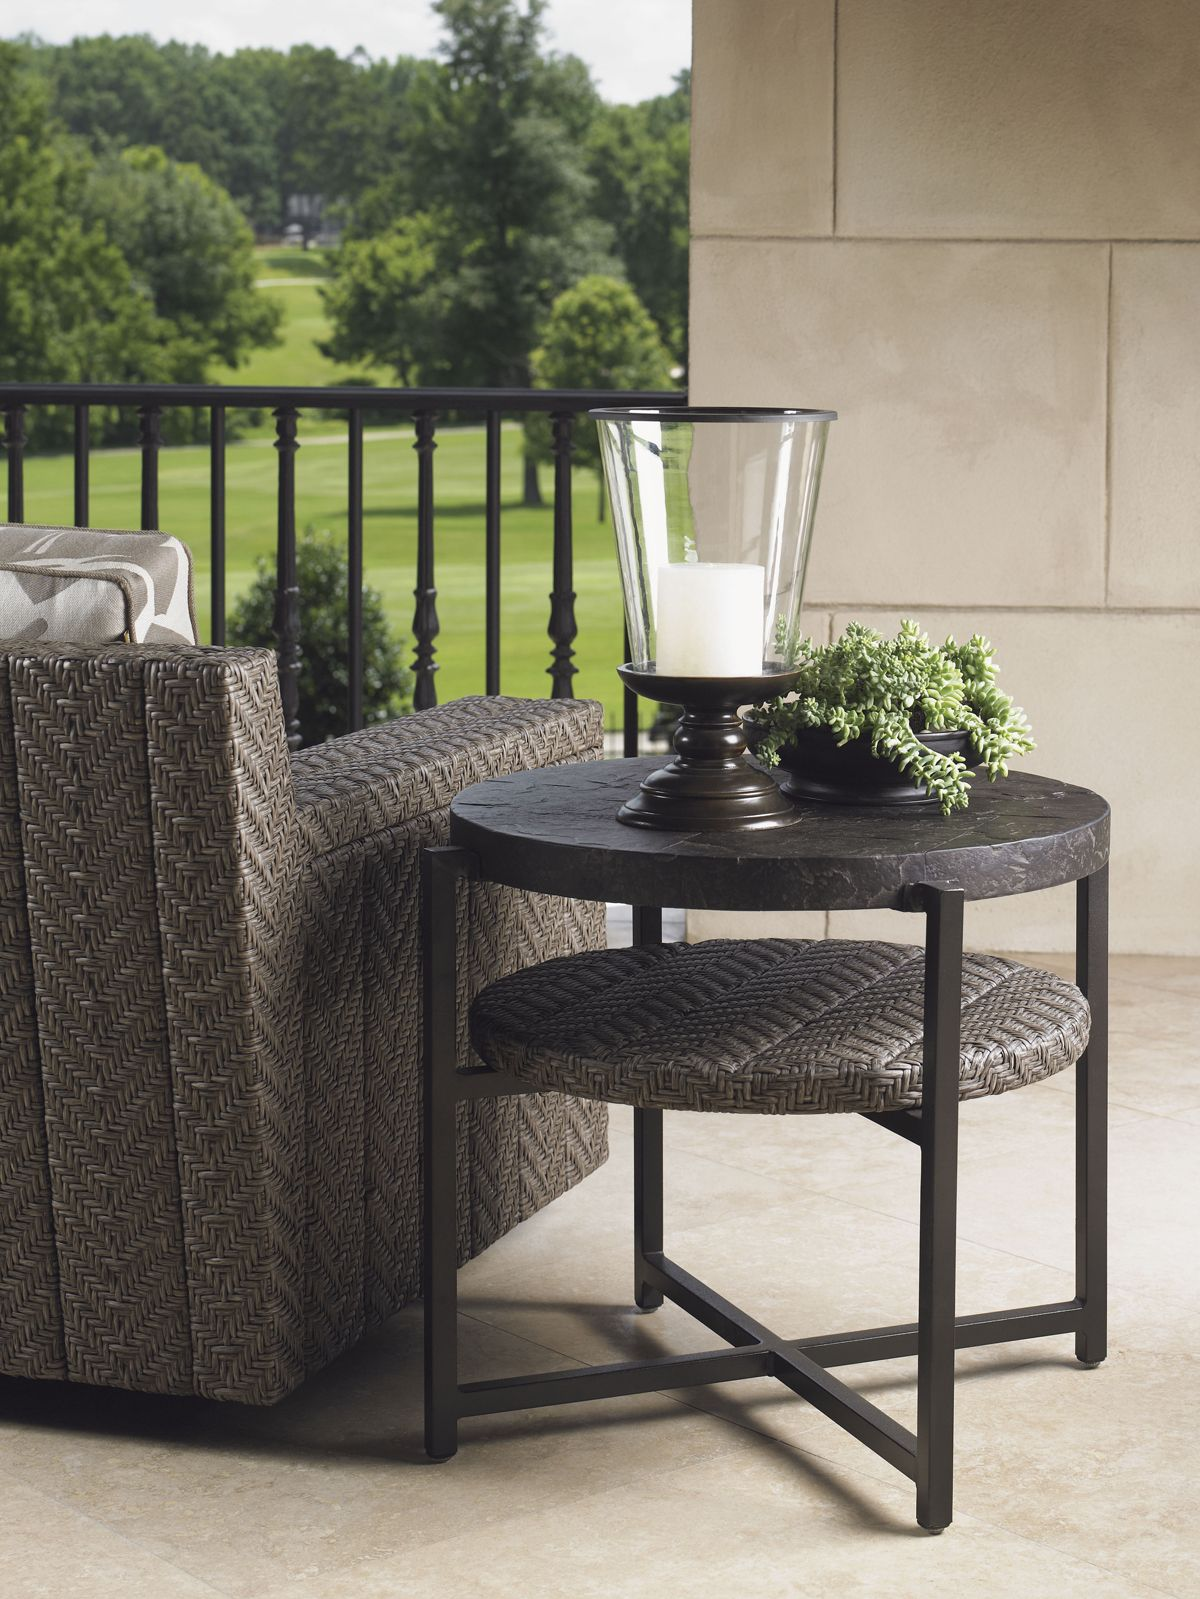 blue olive tommy bahama outdoor end table lexington home brands